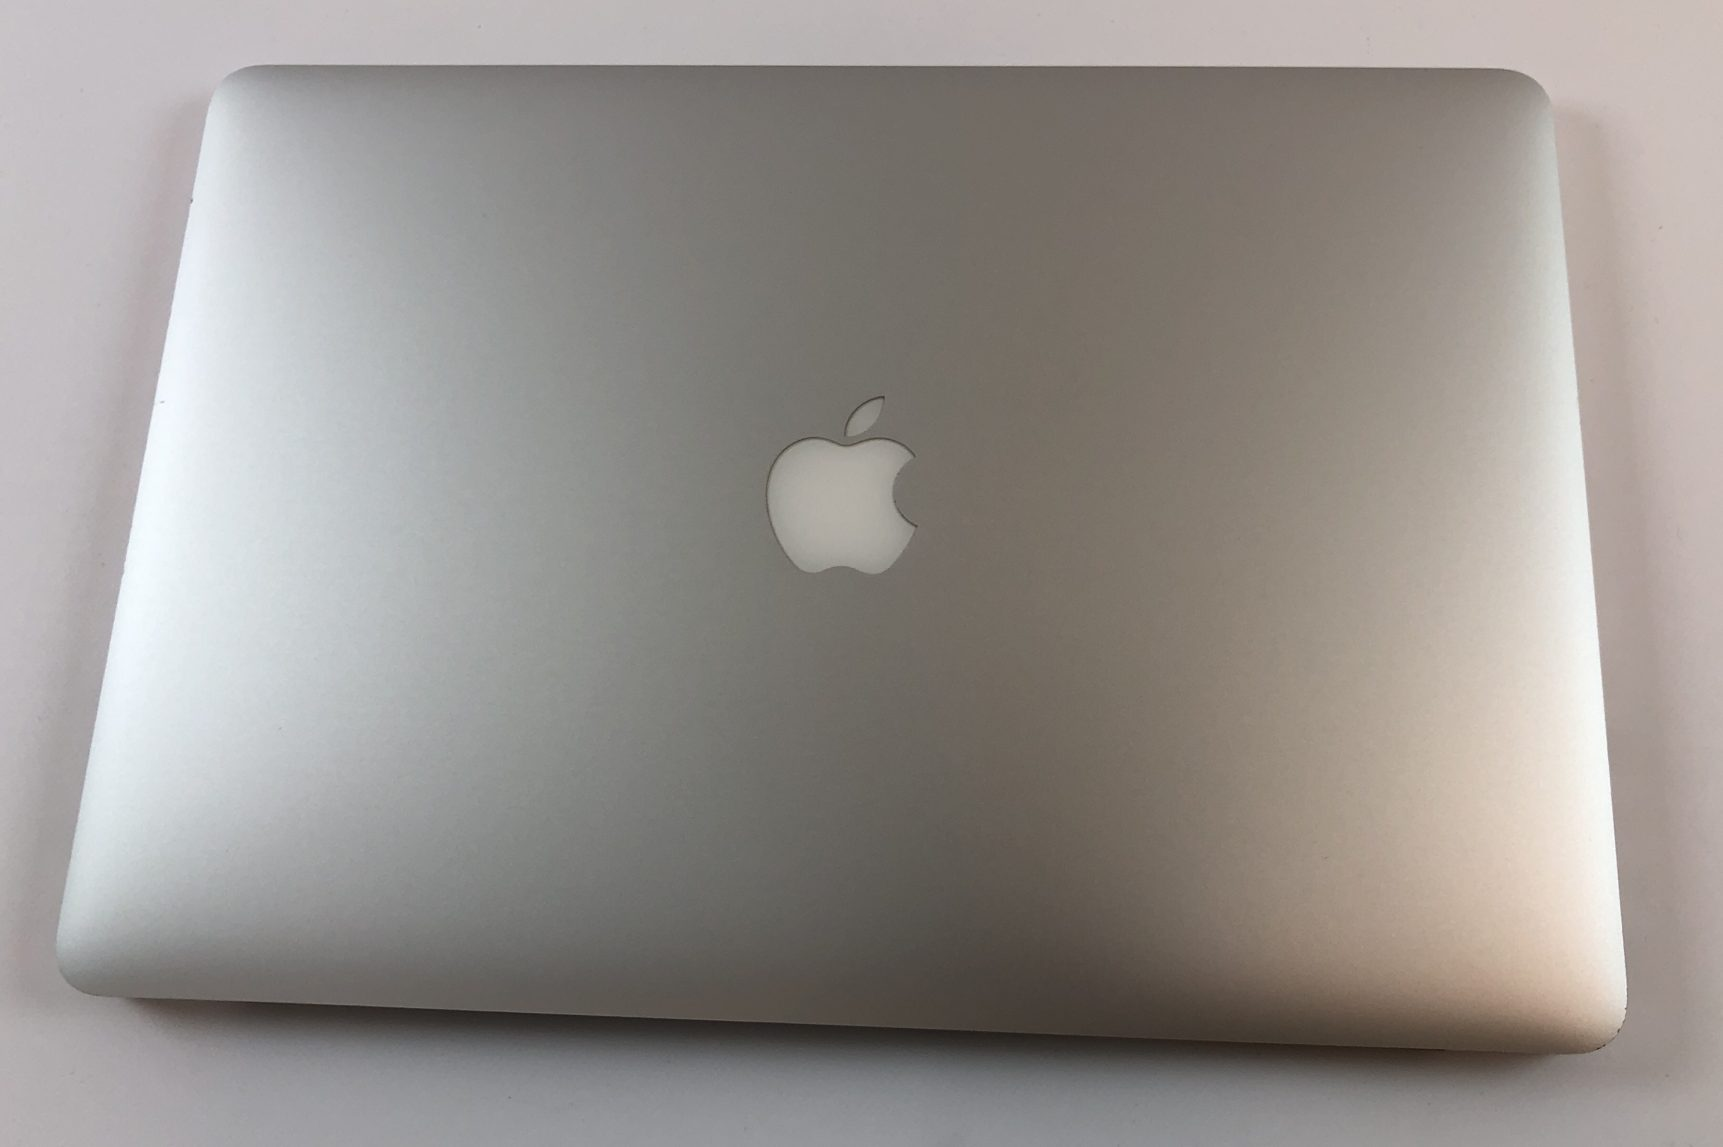 "MacBook Pro Retina 15"" Mid 2015 (Intel Quad-Core i7 2.8 GHz 16 GB RAM 512 GB SSD), Intel Quad-Core i7 2.8 GHz, 16 GB RAM, 512 GB SSD, Afbeelding 2"